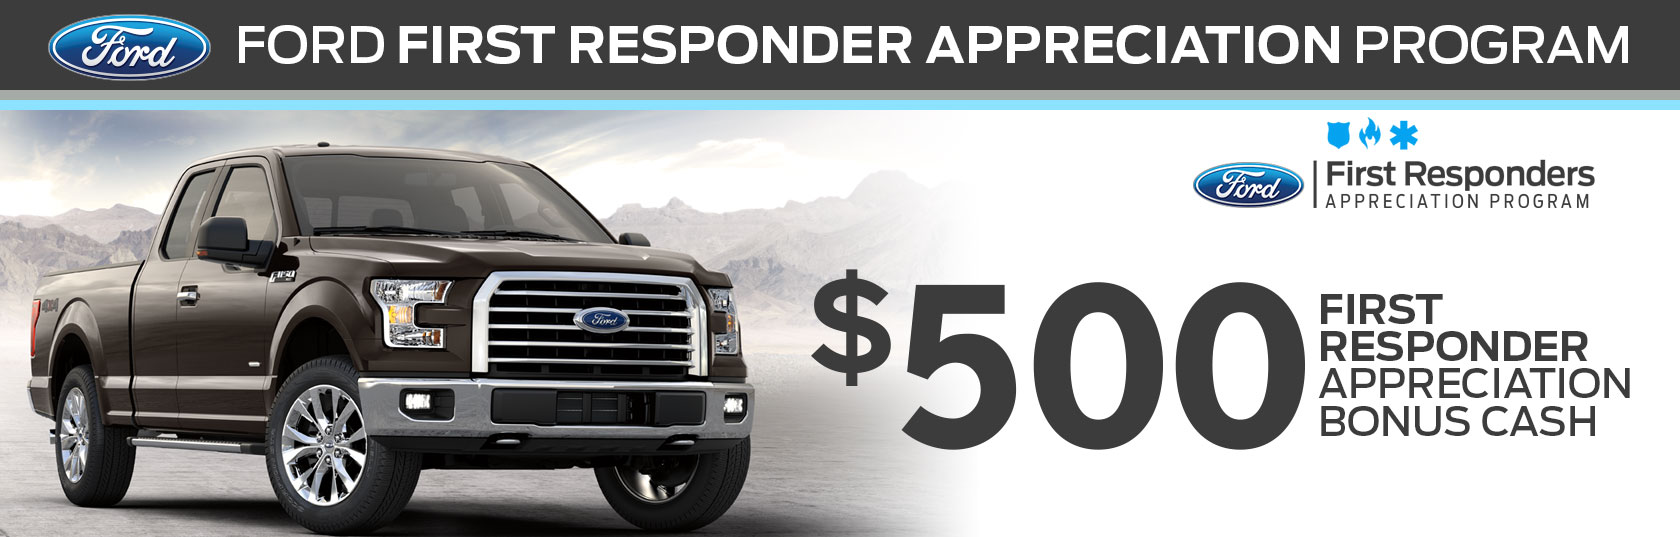 first responder 39 s appreciation program university ford. Cars Review. Best American Auto & Cars Review